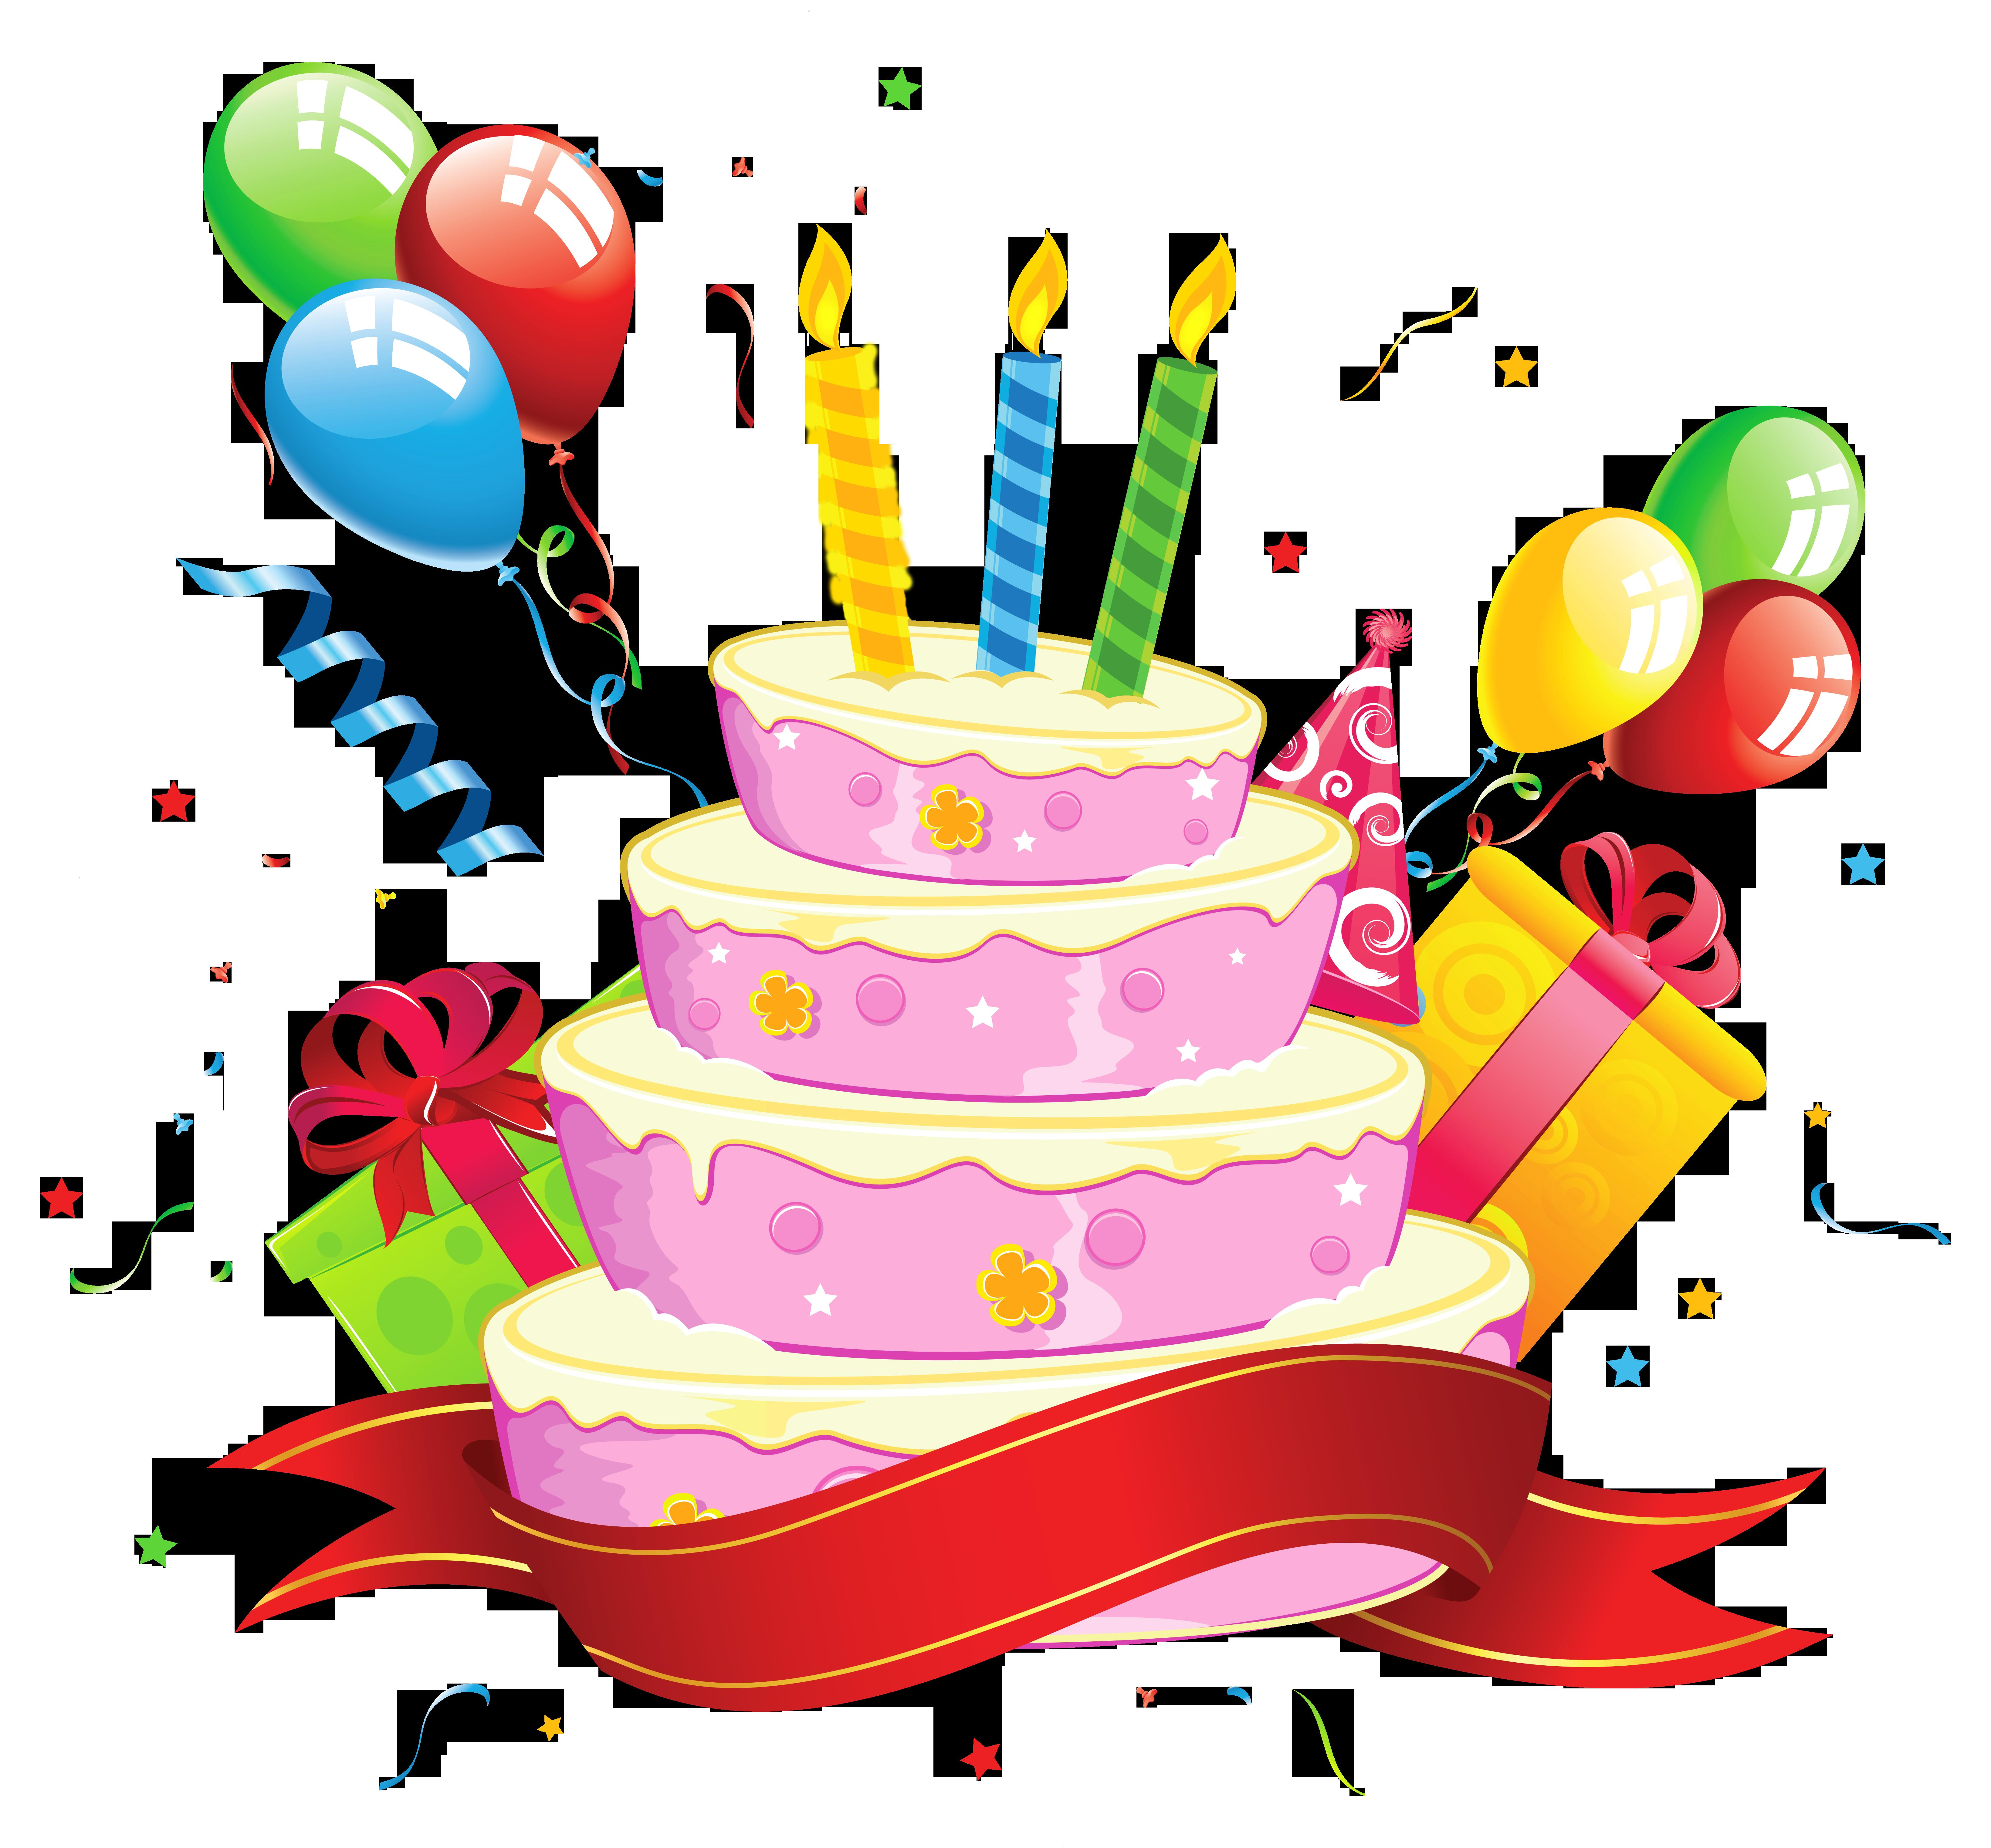 clipart images of birthday cakes ; 064d035012d9b79479c794c39eedfdc6